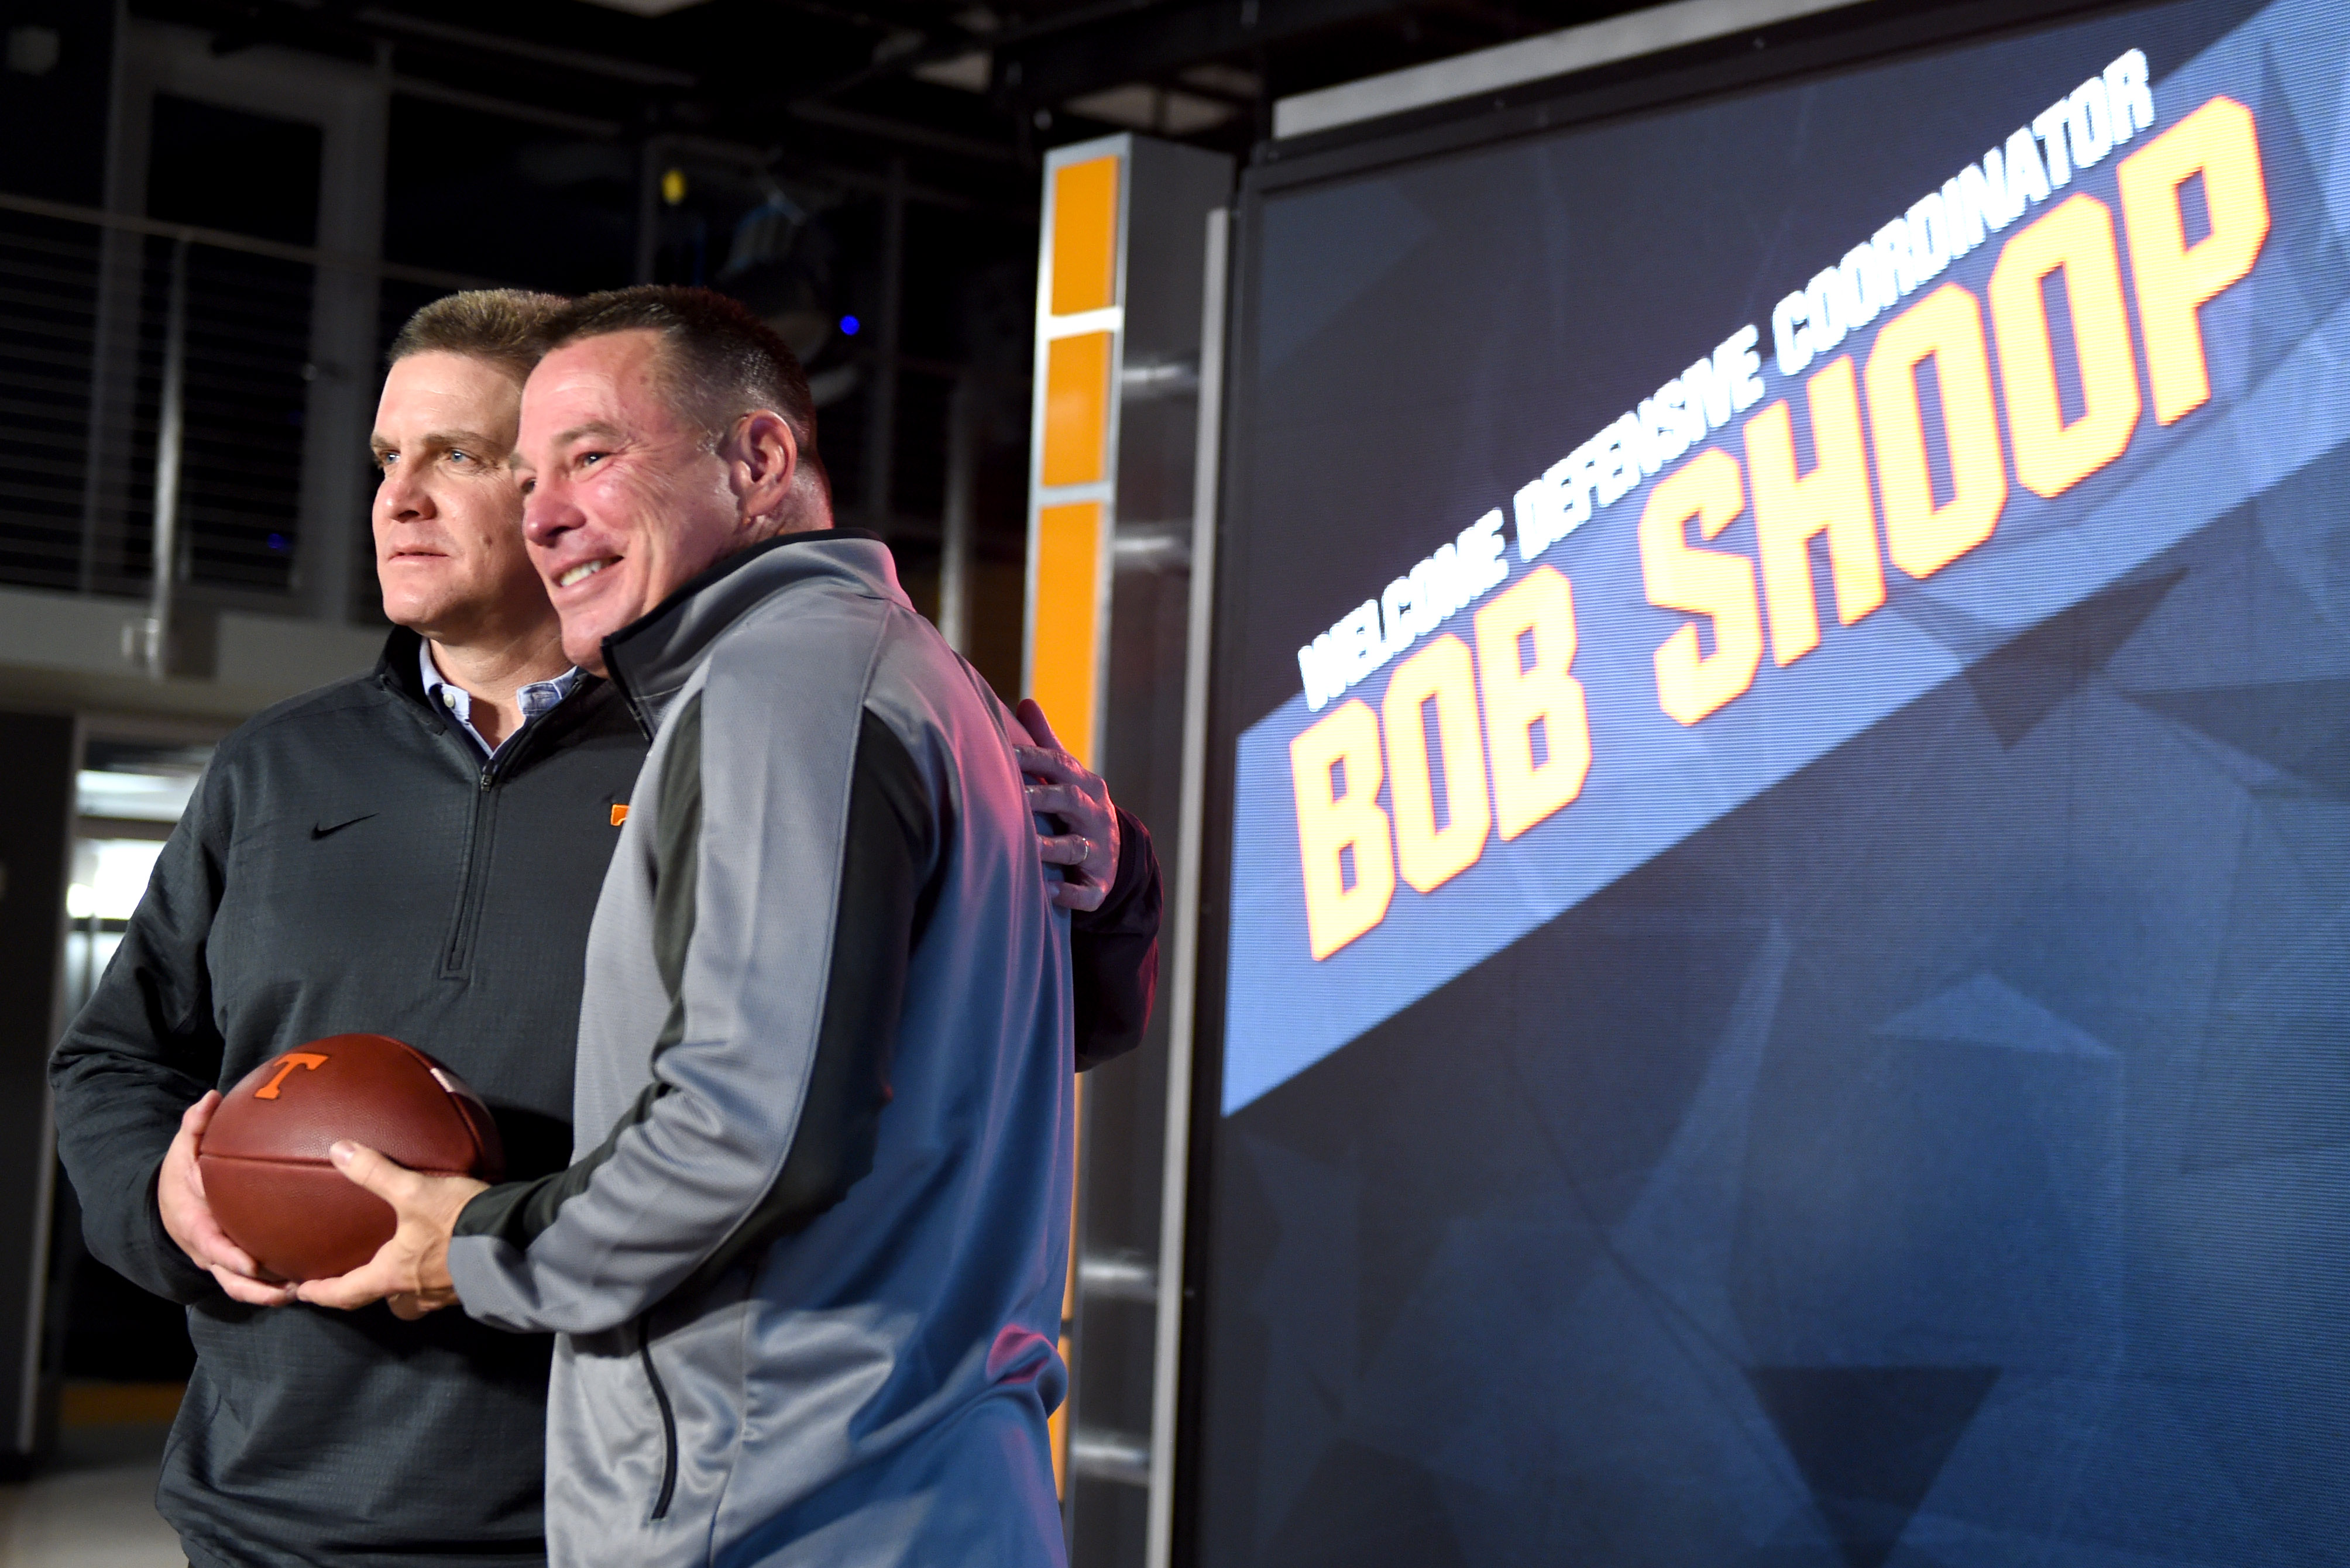 Tennessee football coach Butch Jones, right, poses with the team's new defensive coordinator, Bob Shoop, during a news conference Tuesday, Jan. 12, 2016, in Knoxville, Tenn. (Amy Smotherman Burgess/Knoxville News Sentinel via AP)